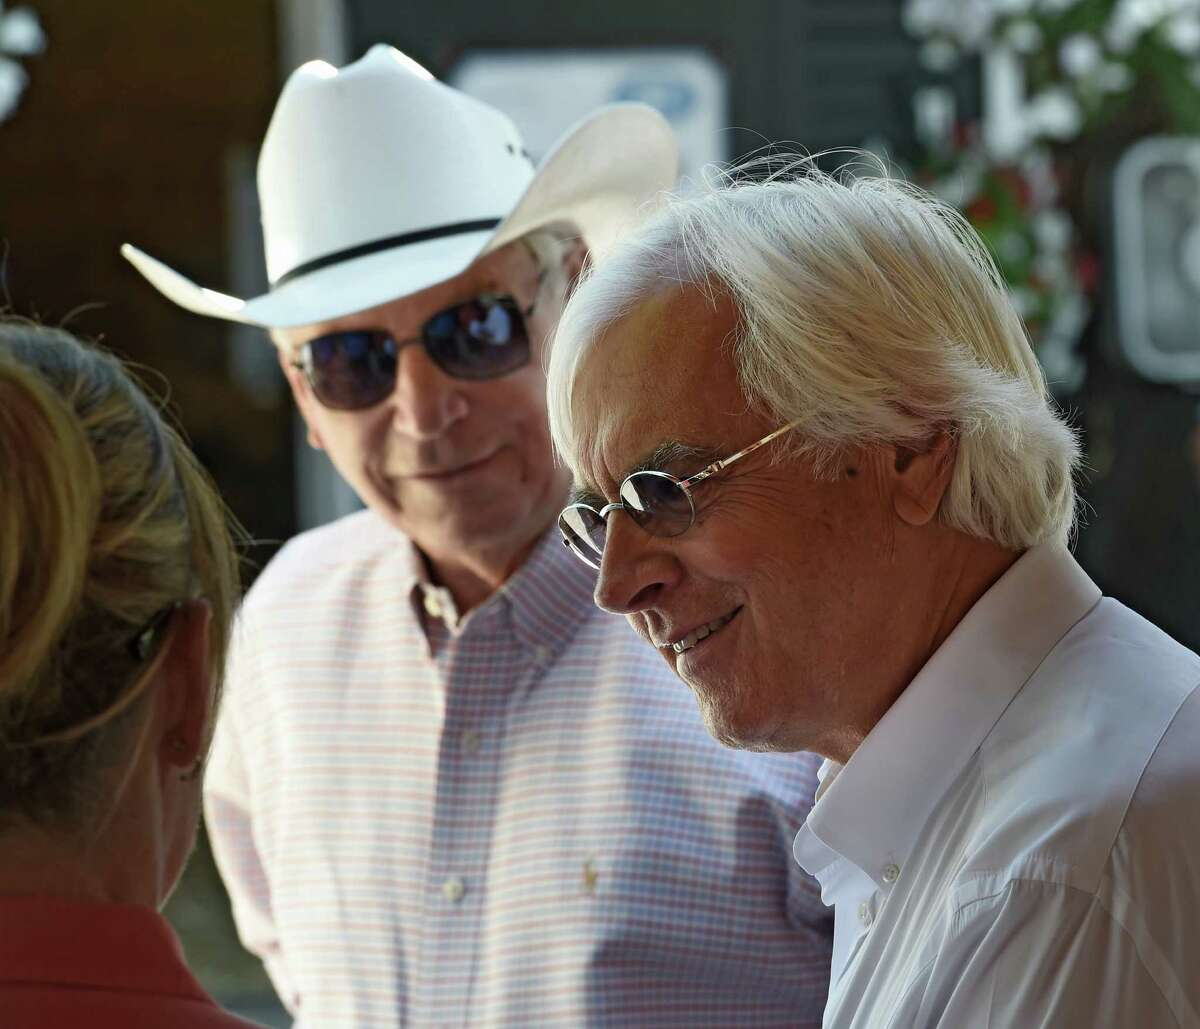 Triple Crown winning trainer Bob Baffert enjoys a laugh with fellow Hall of Fame trainer D. Wayne Lukas Monday Aug. 8, 2016 on the Fasig-Tipton sales grounds in Saratoga Springs, N.Y. The sales commence this evening. The sale will conclude tomorrow evening. (Skip Dickstein/Times Union)